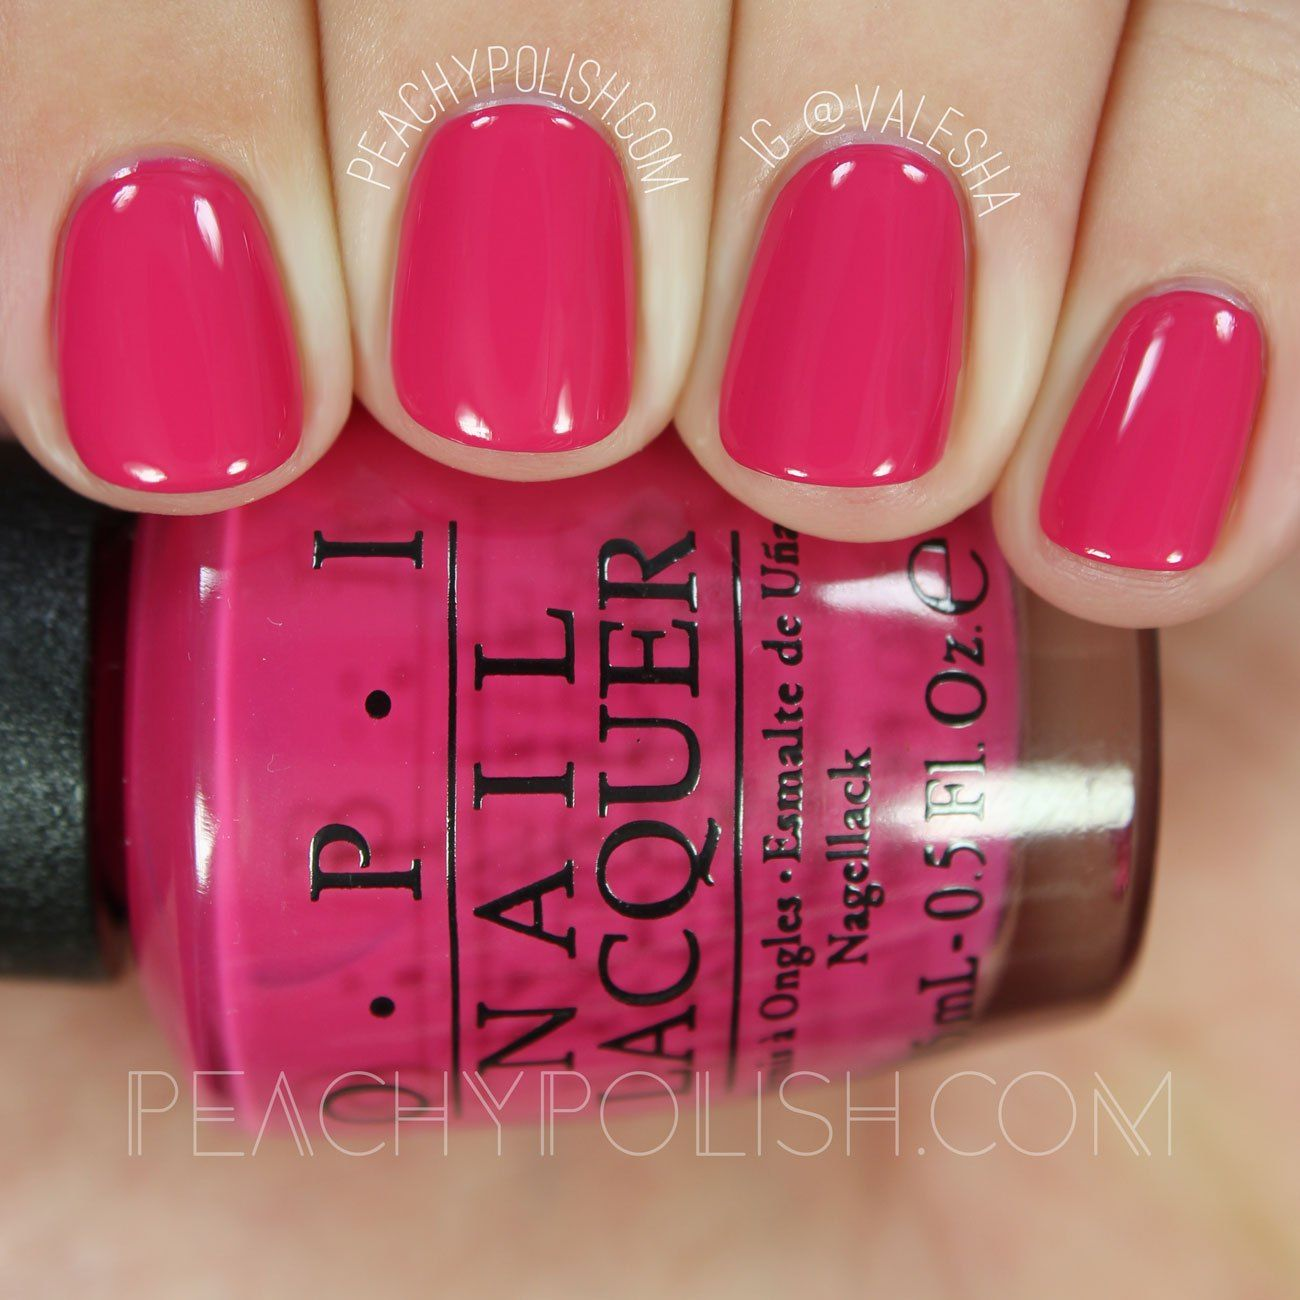 Opi Apartment For Two Holiday 2017 Breakfast At Tiffany S Collection Peachy Polish